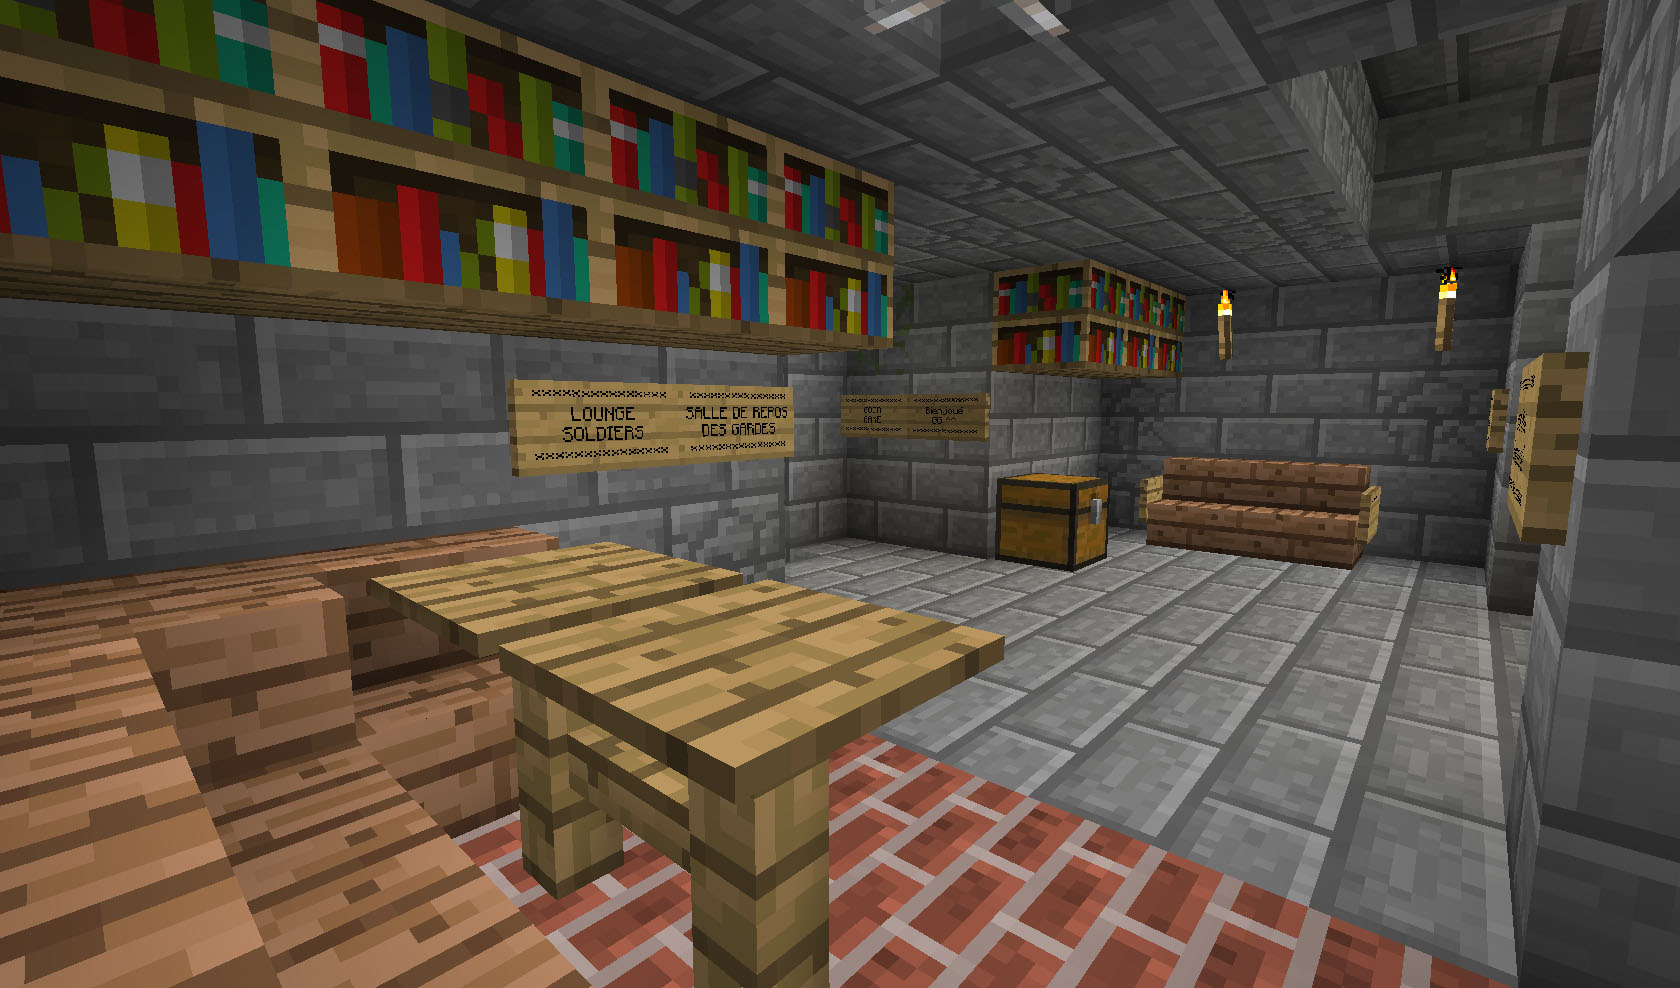 http://minecraft-forum.net/wp-content/uploads/2013/02/155fa__Prison-Adventure-Map-4.jpg